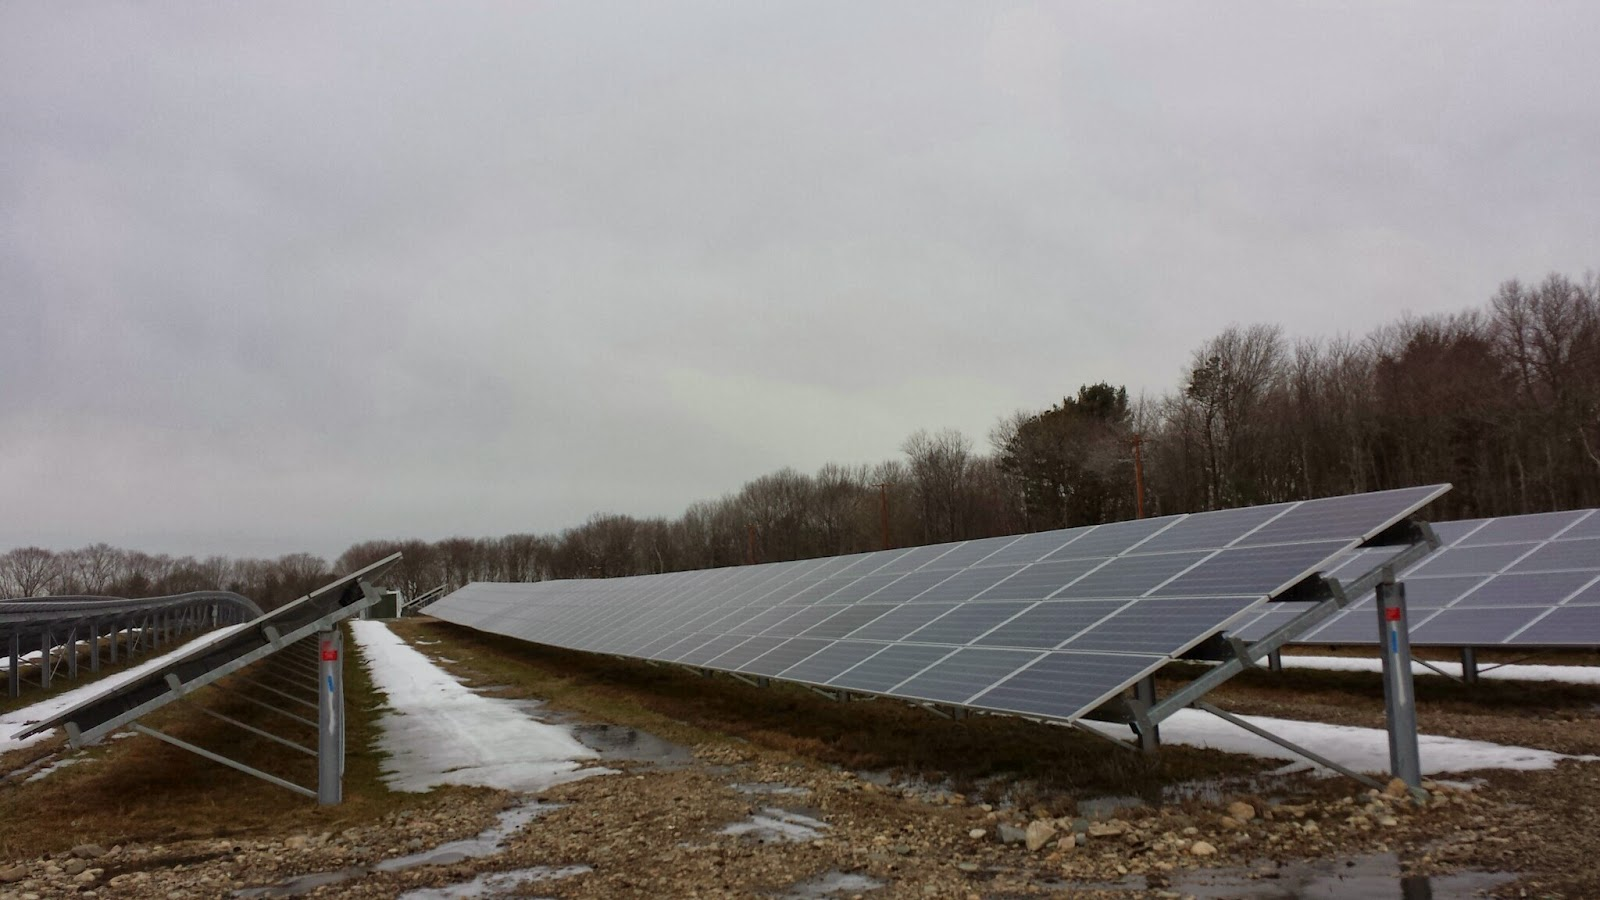 the solar farm at Mount St Mary's earlier this year